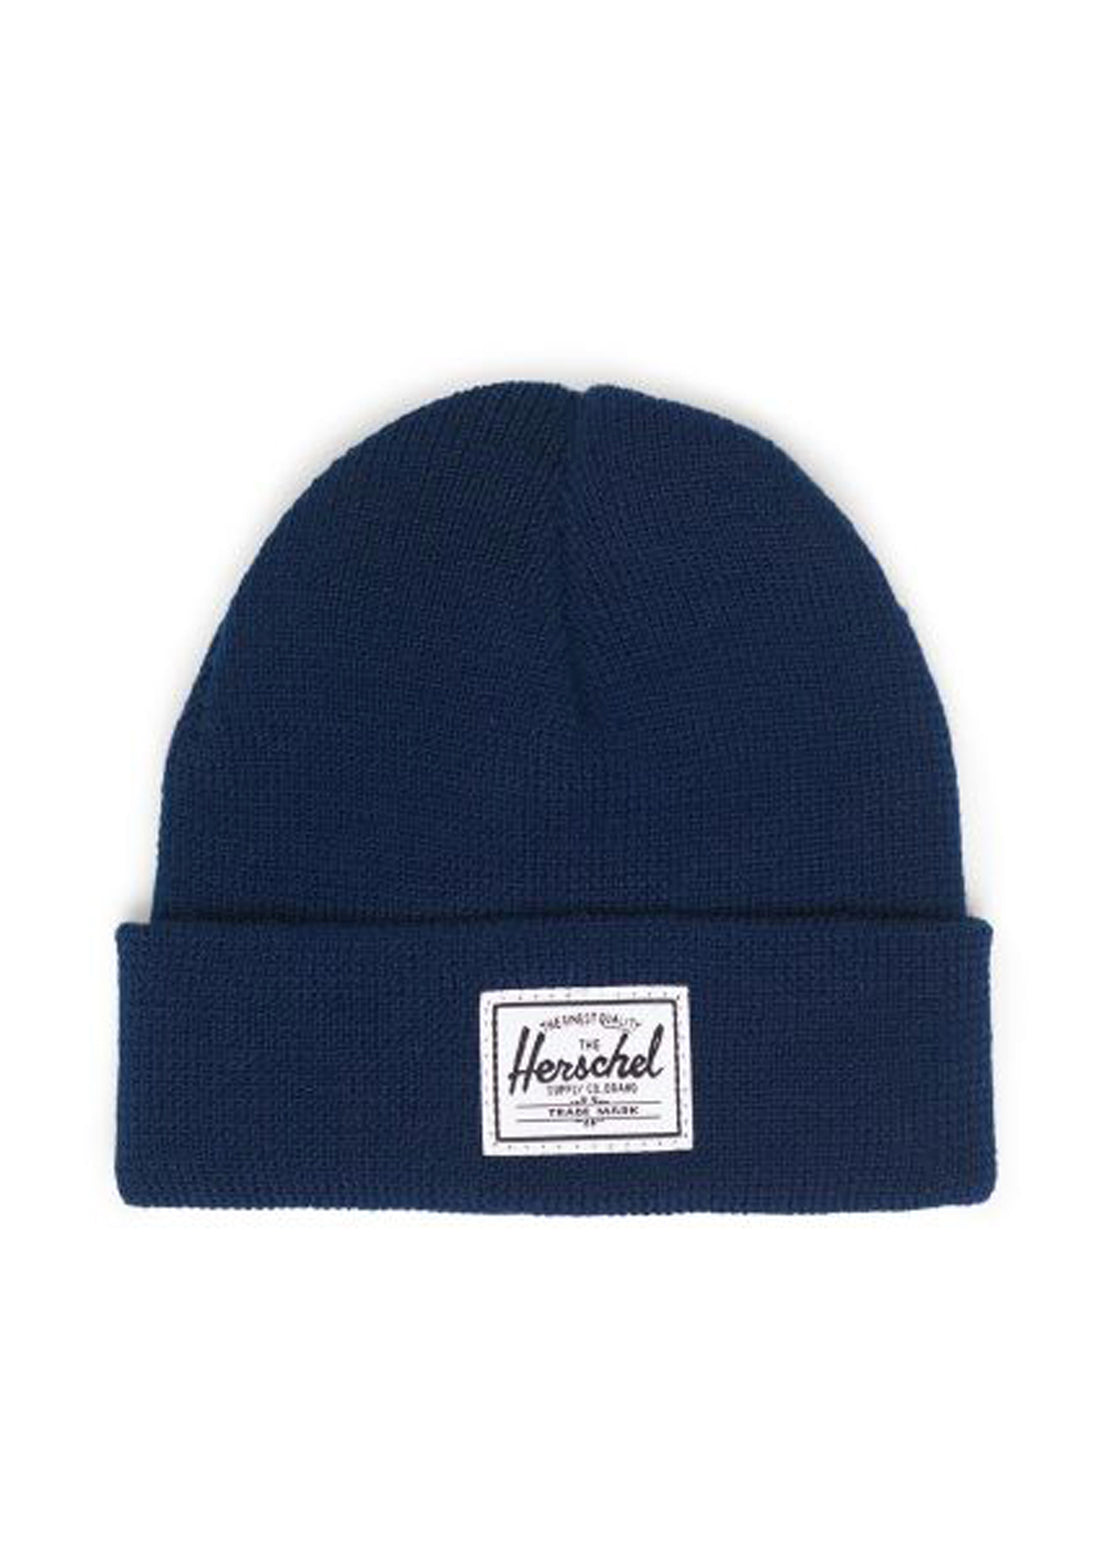 Herschel Junior Baby Beanie Navy